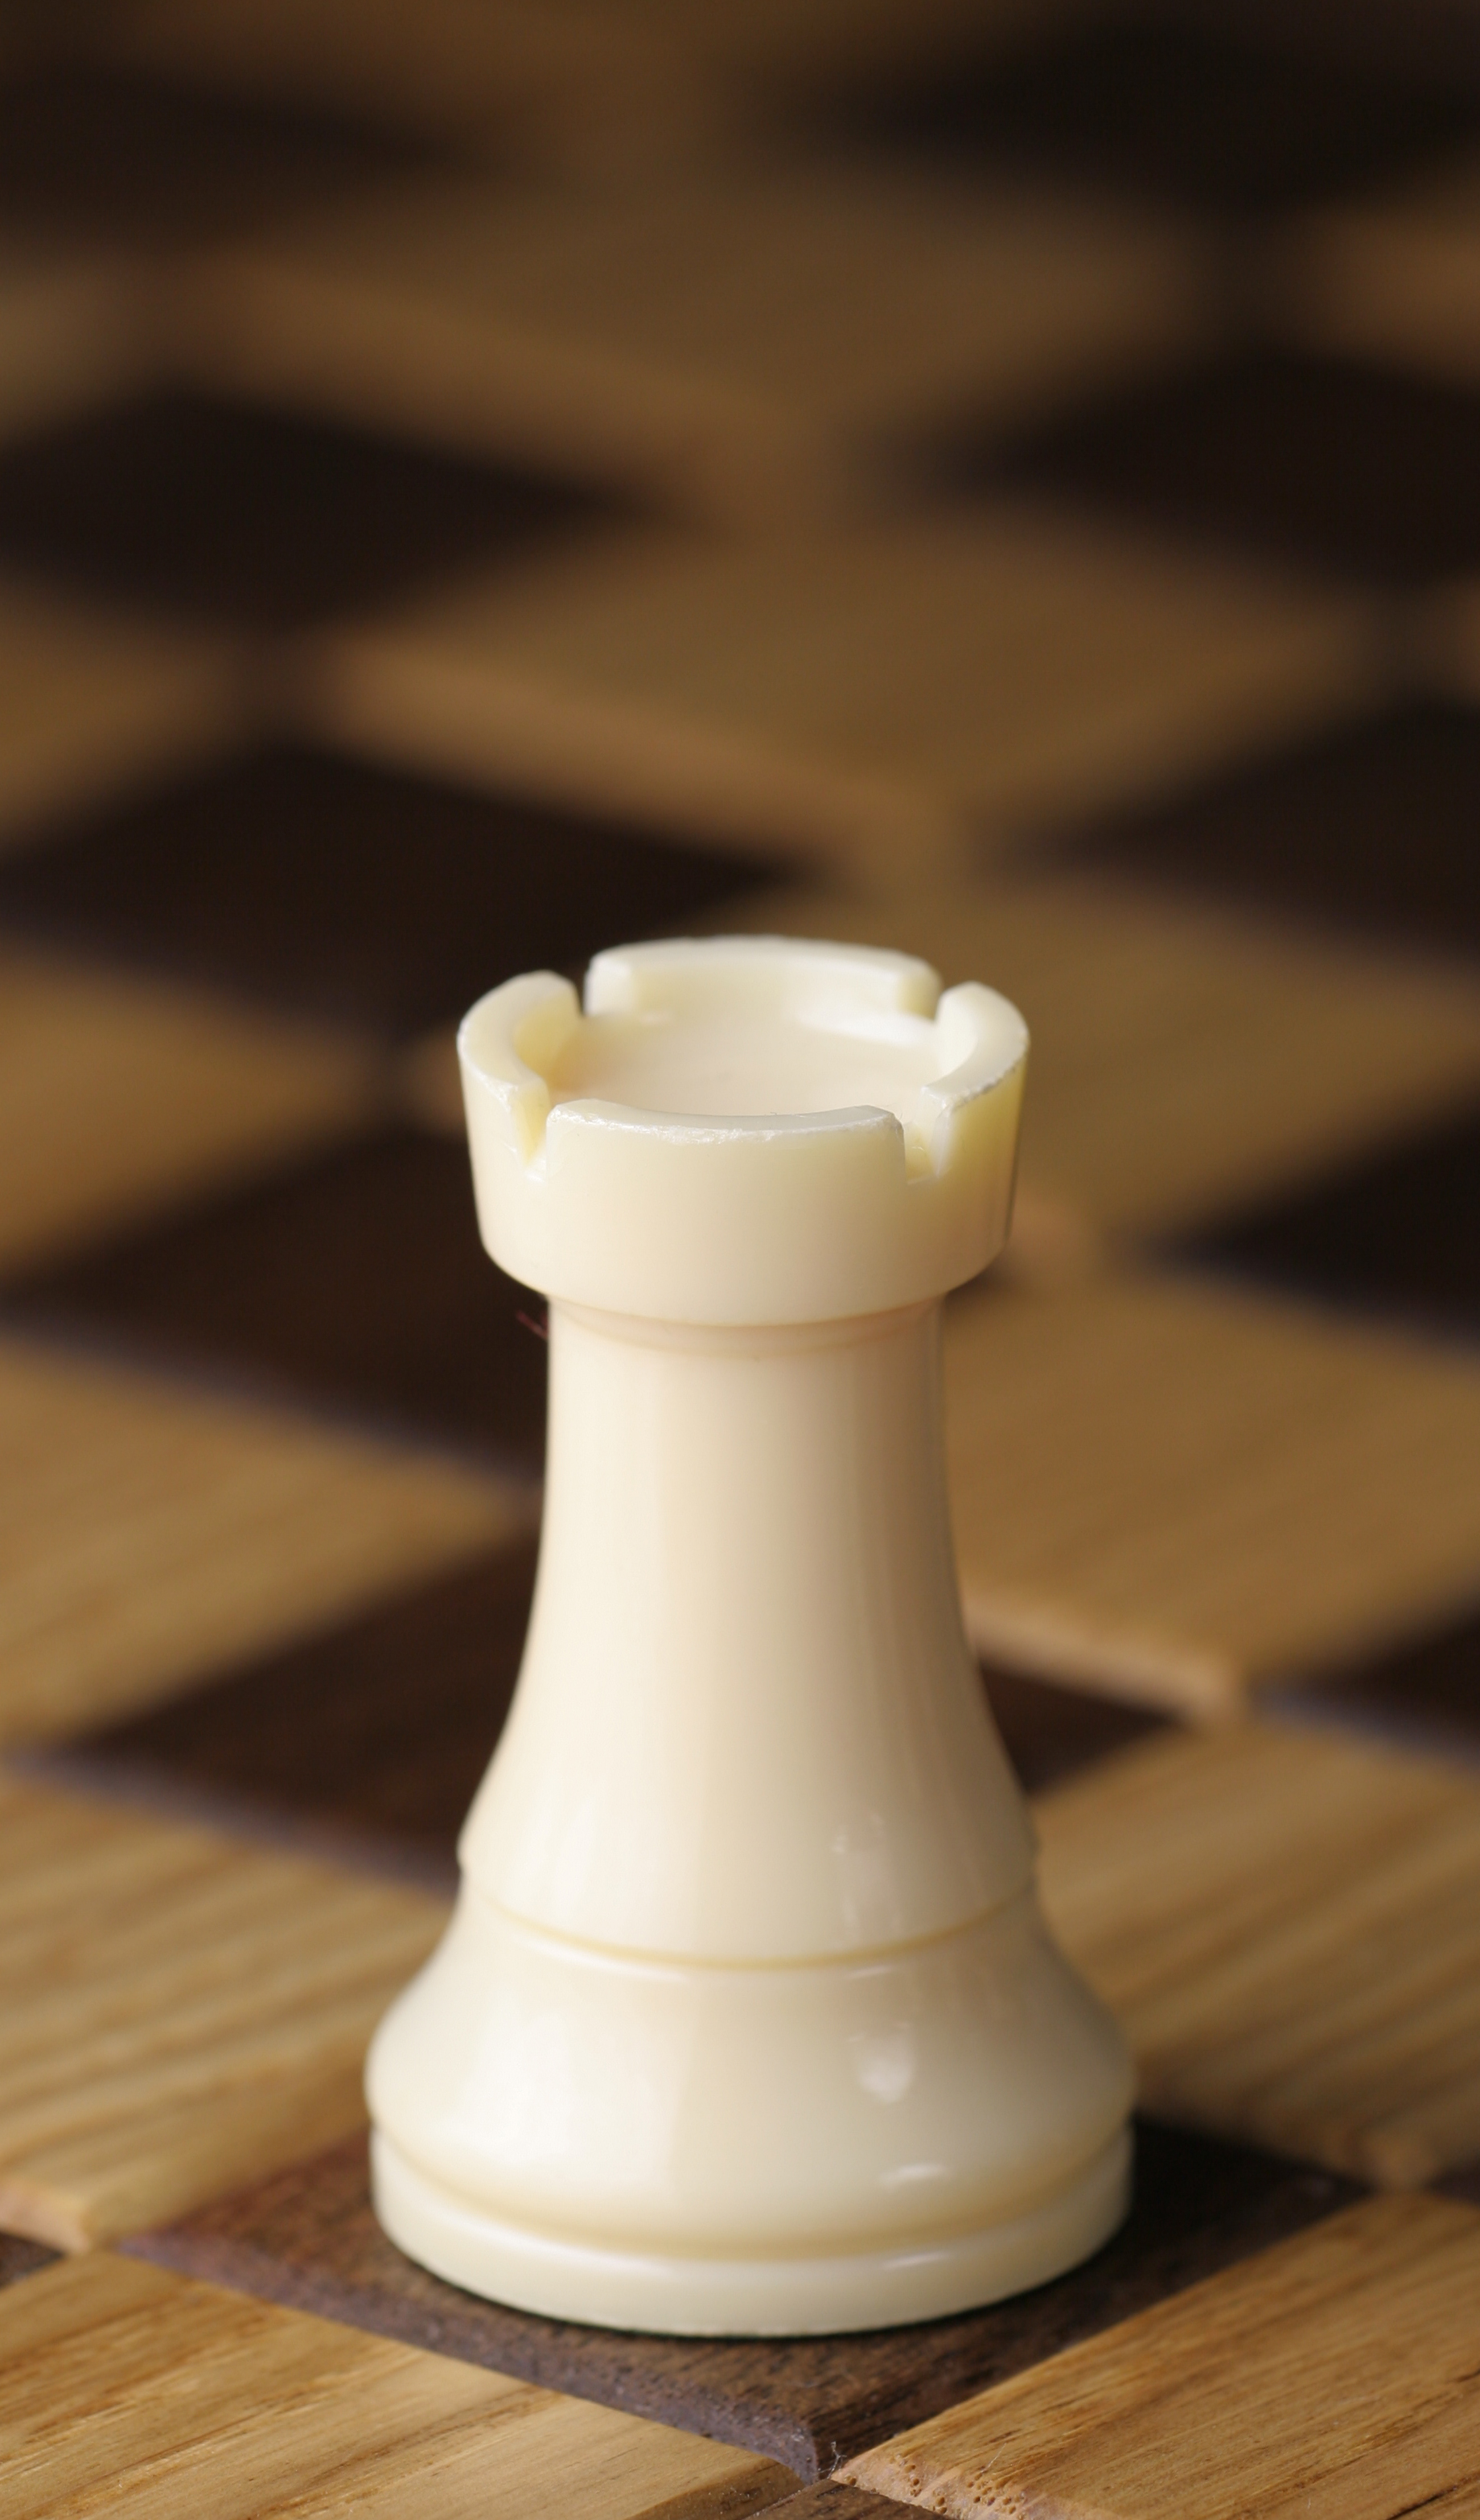 Rook (chess) - Wikipedia